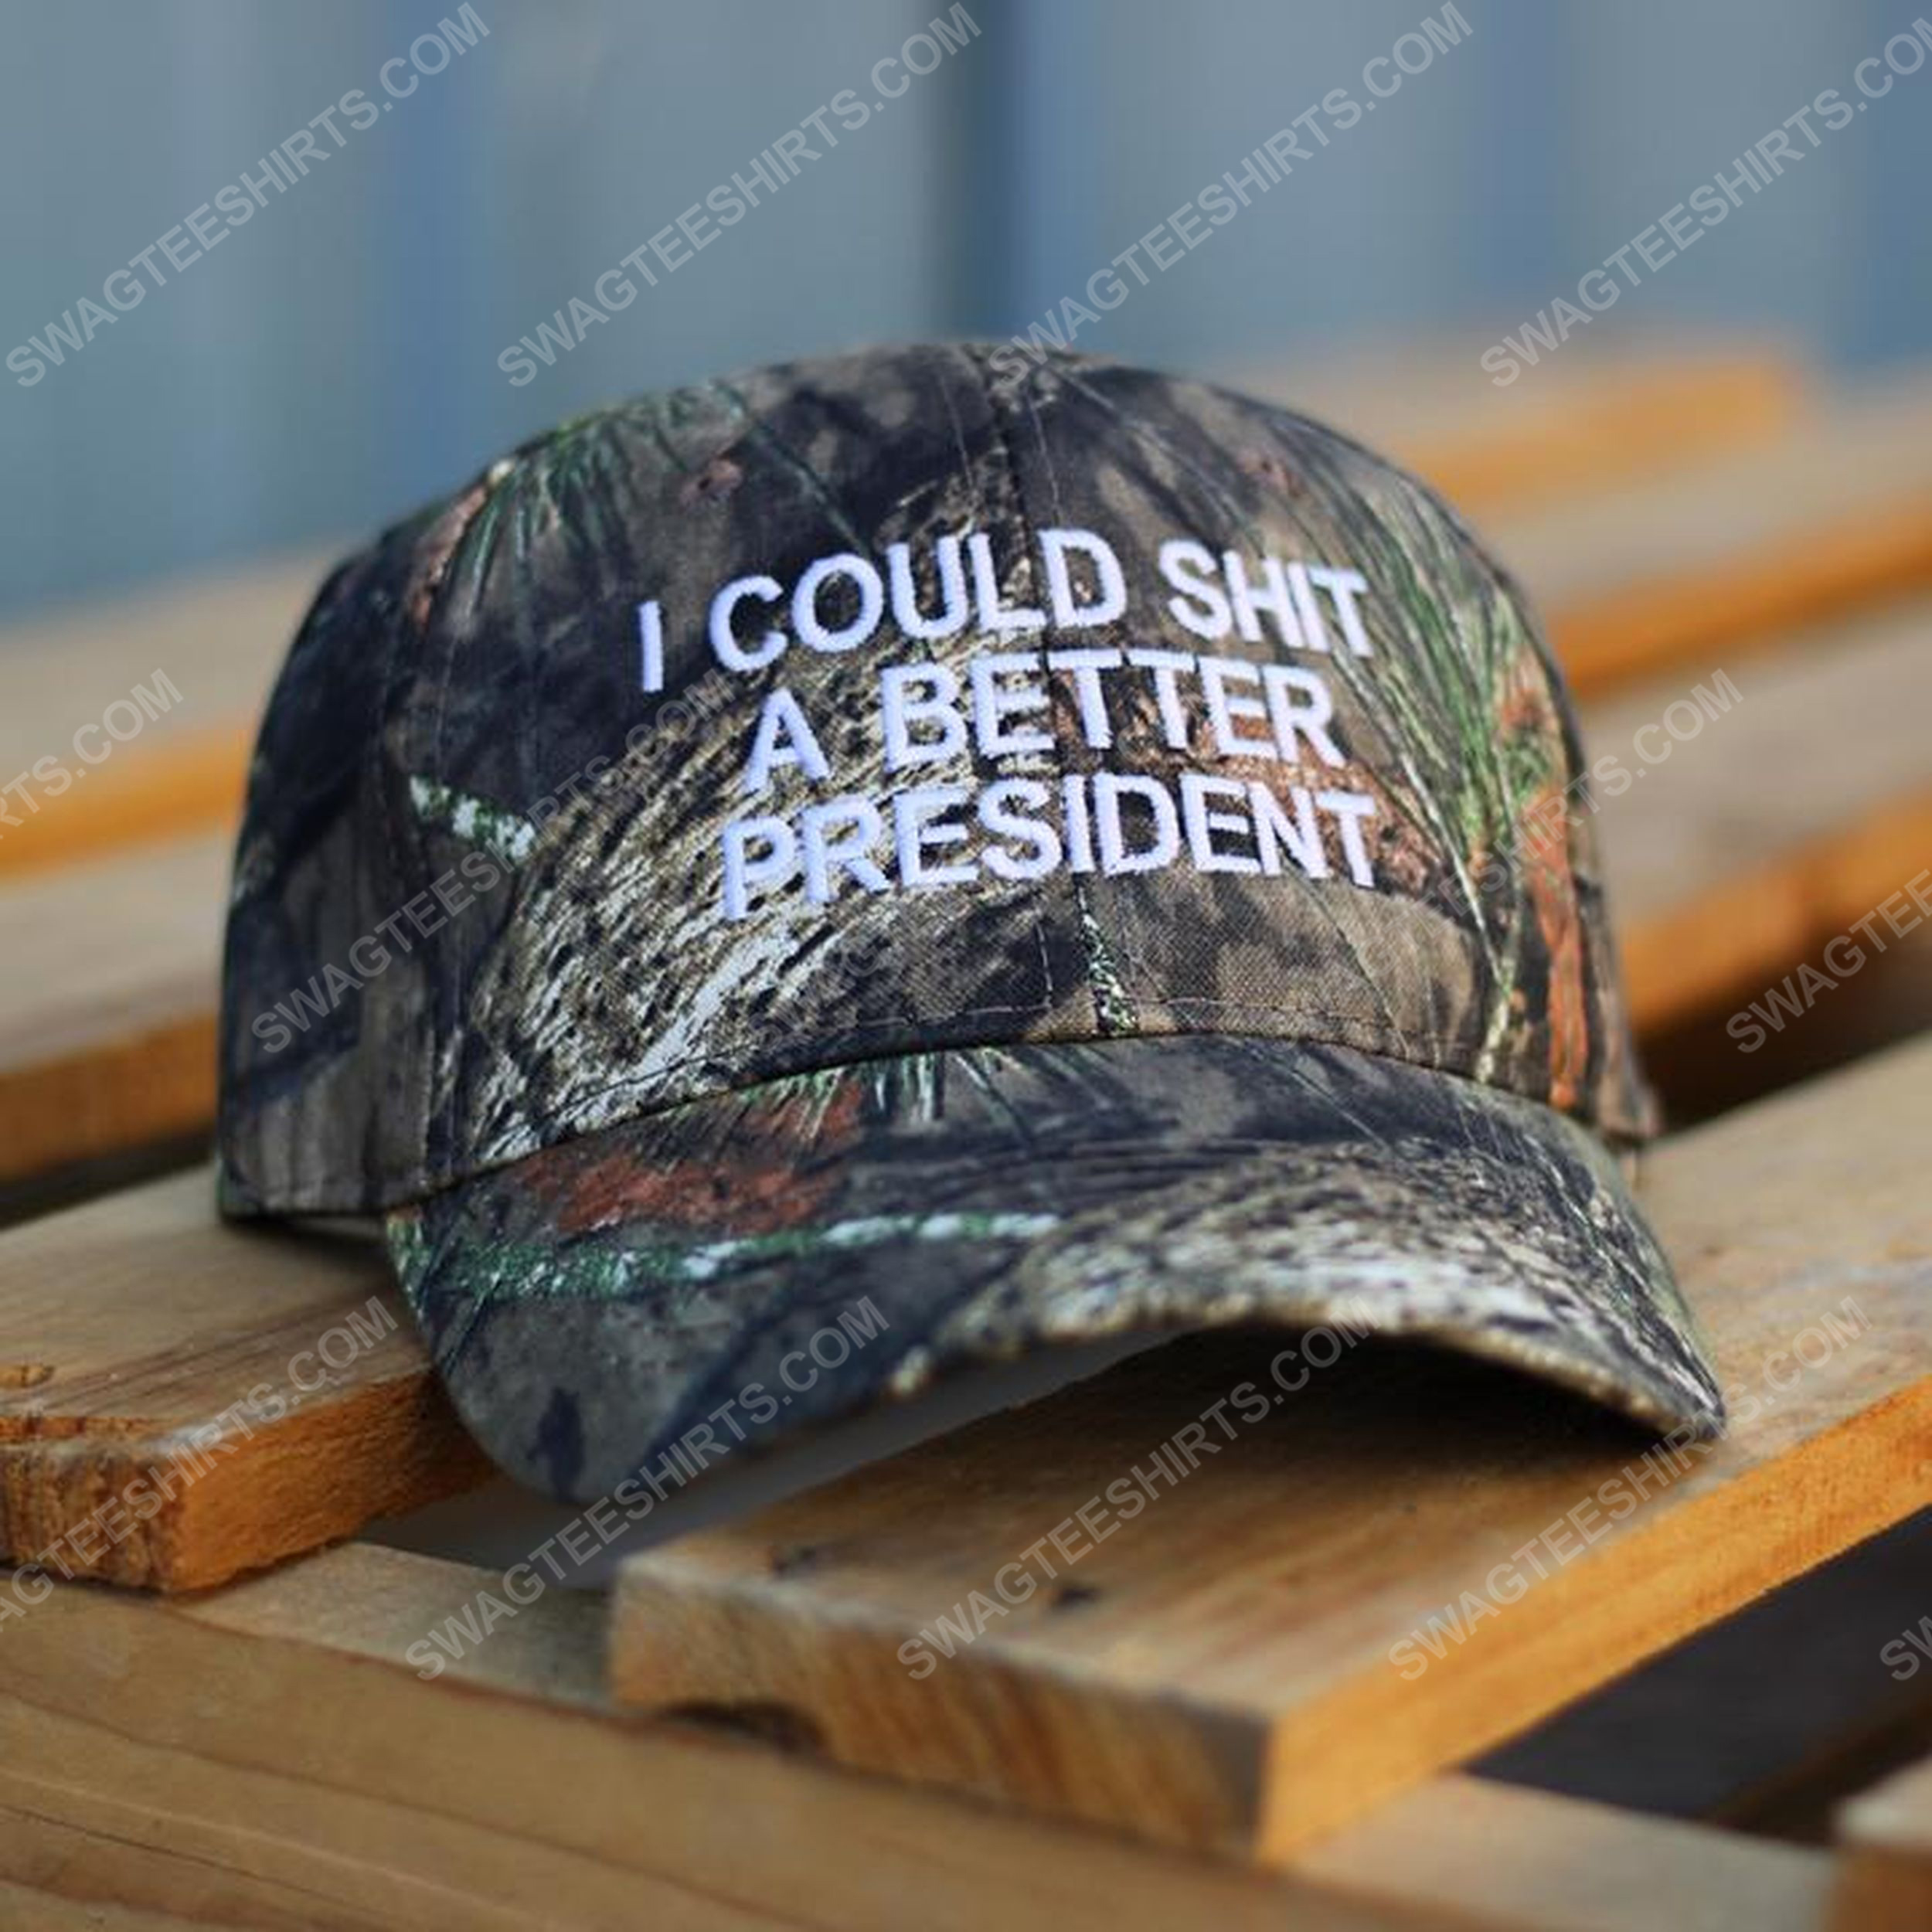 Camo i could shit a better president full print classic hat 1 - Copy (2)